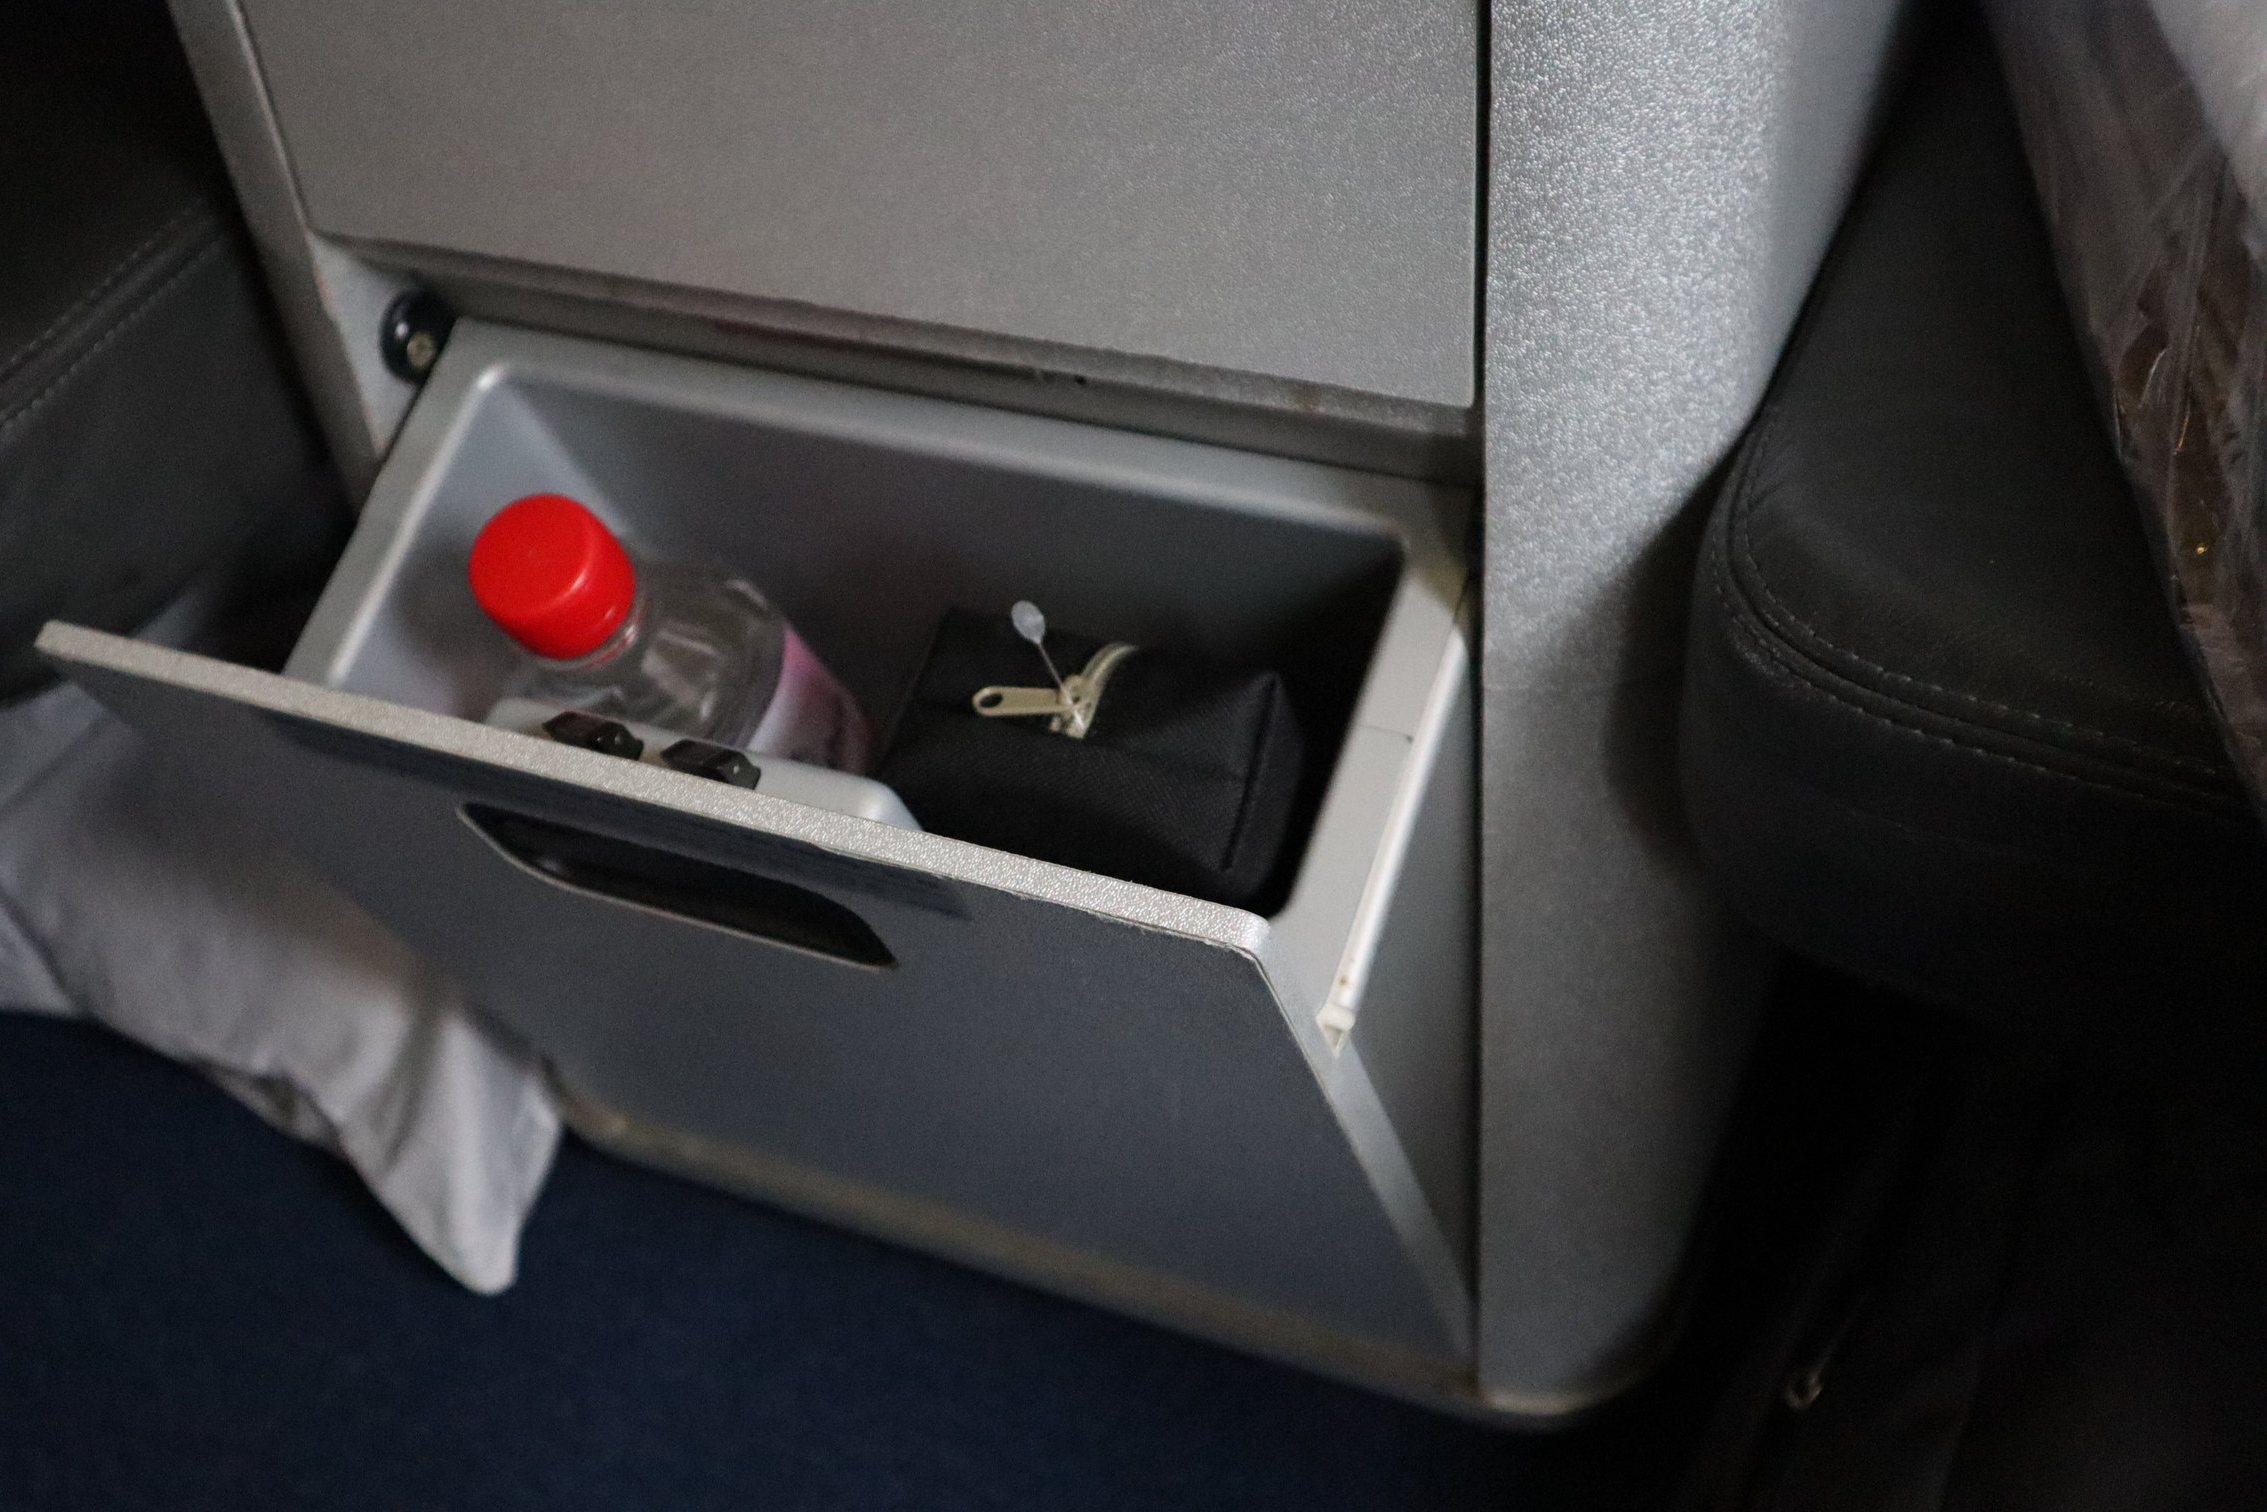 Lufthansa 747-400 business class – Small storage compartment